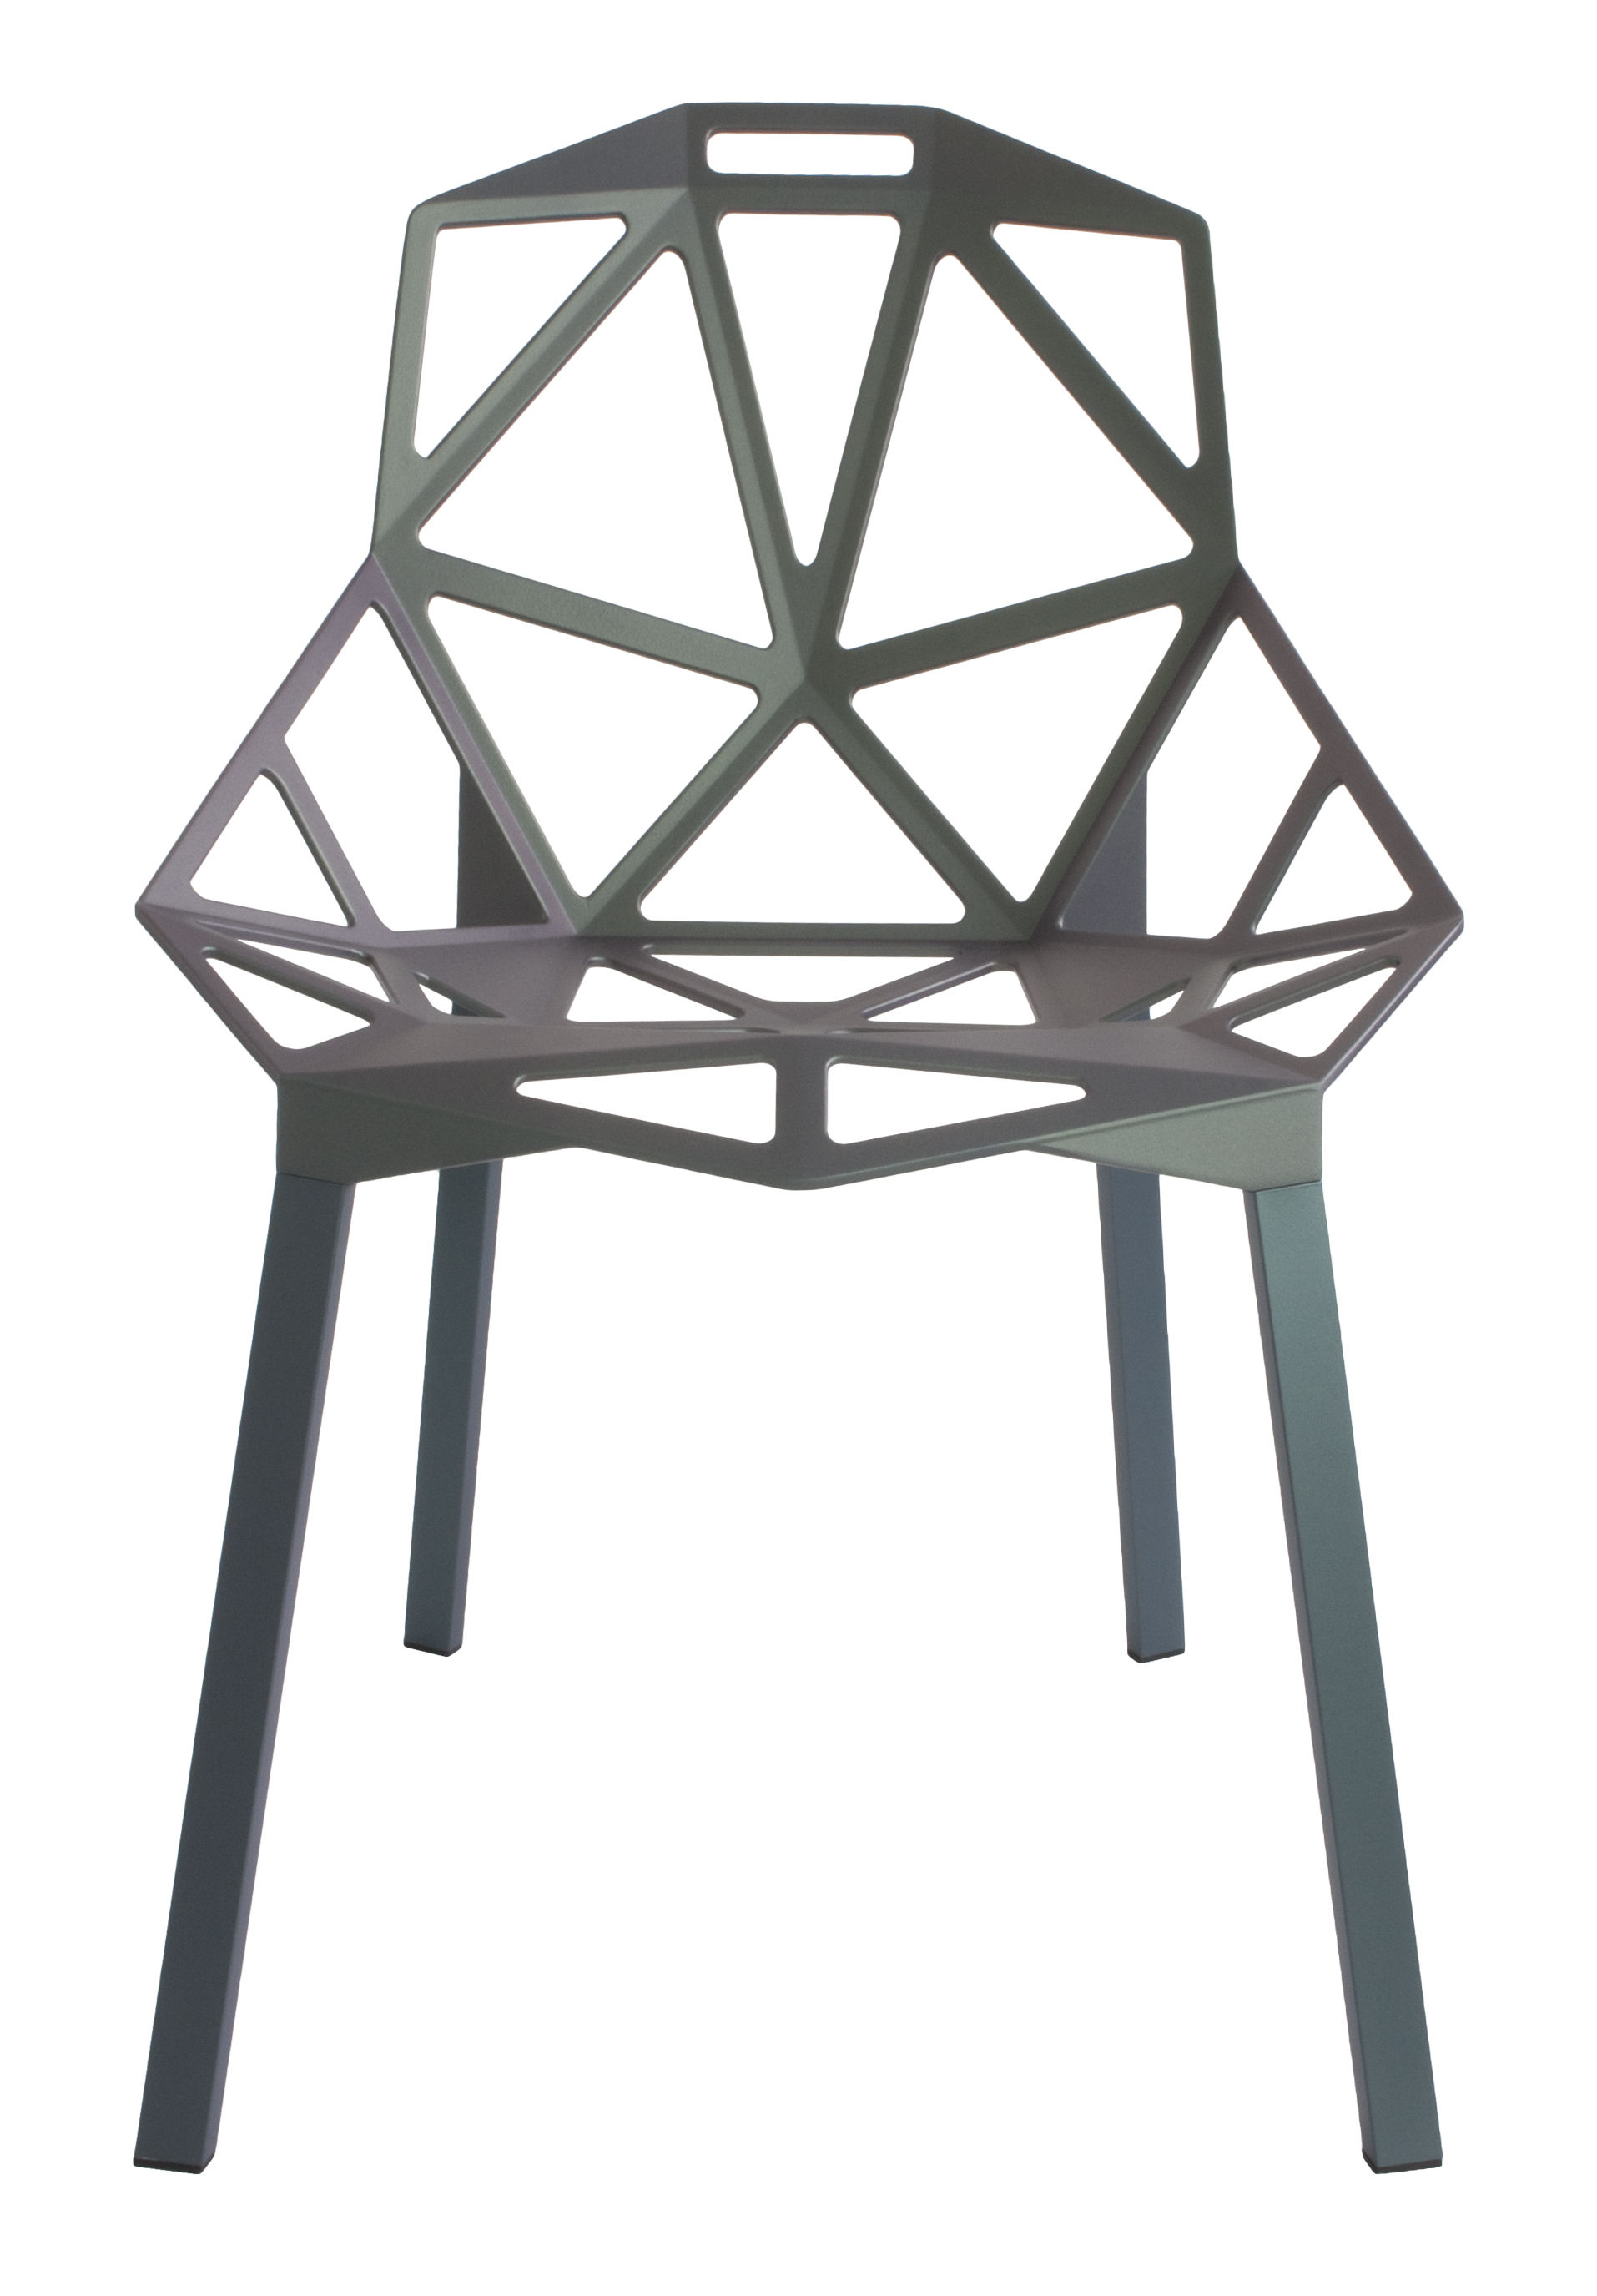 Furniture - Chairs - Chair One Stacking chair - / metal by Magis - Grey-green / Grey-green feet - Painted cast aluminium, Varnished aluminium